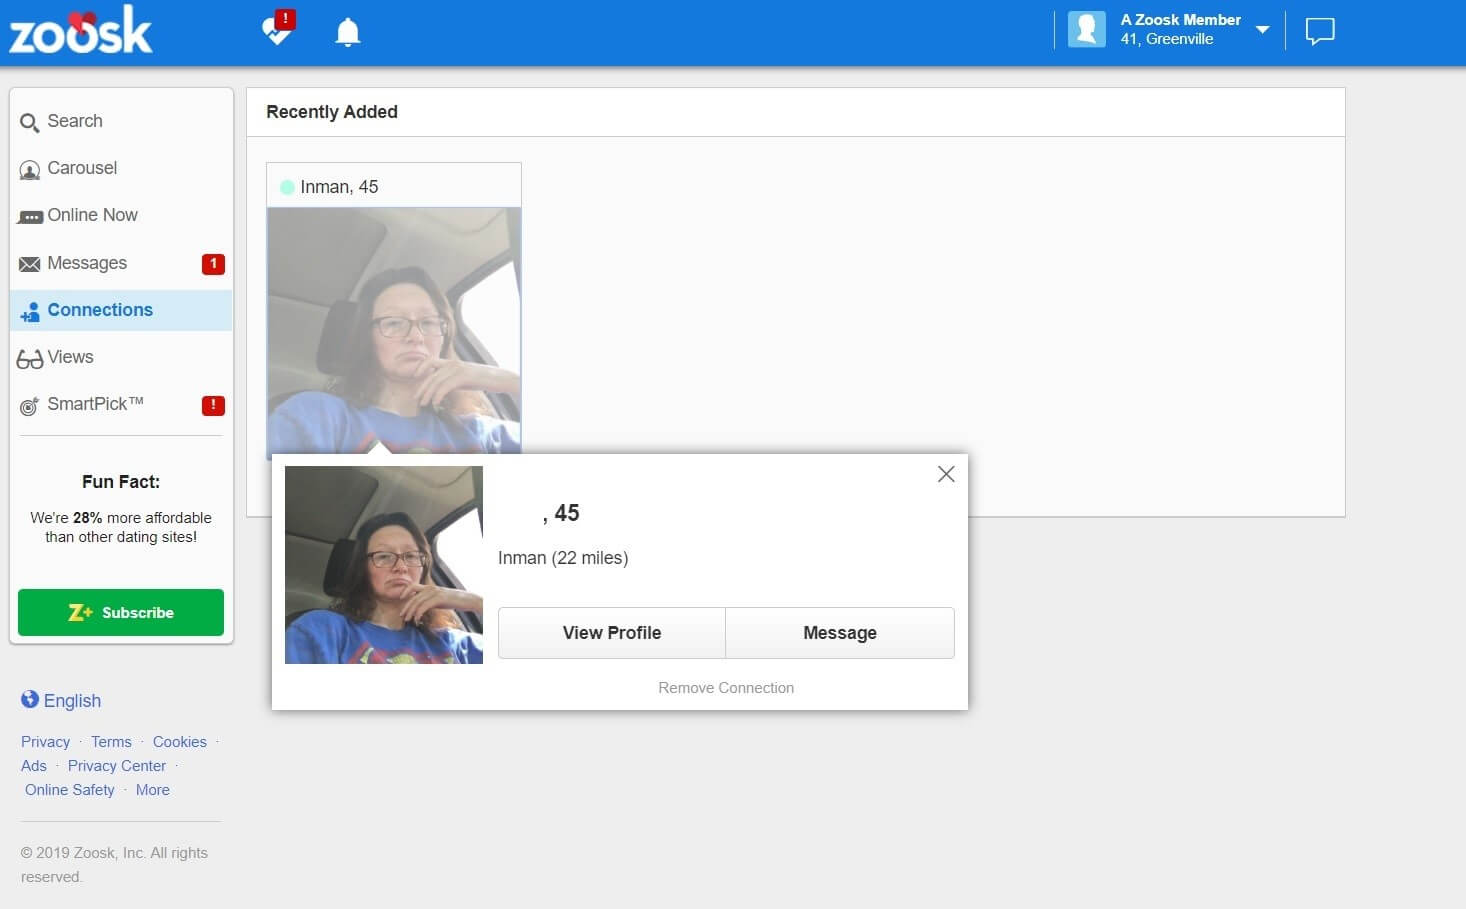 Zoosk - Make new connections